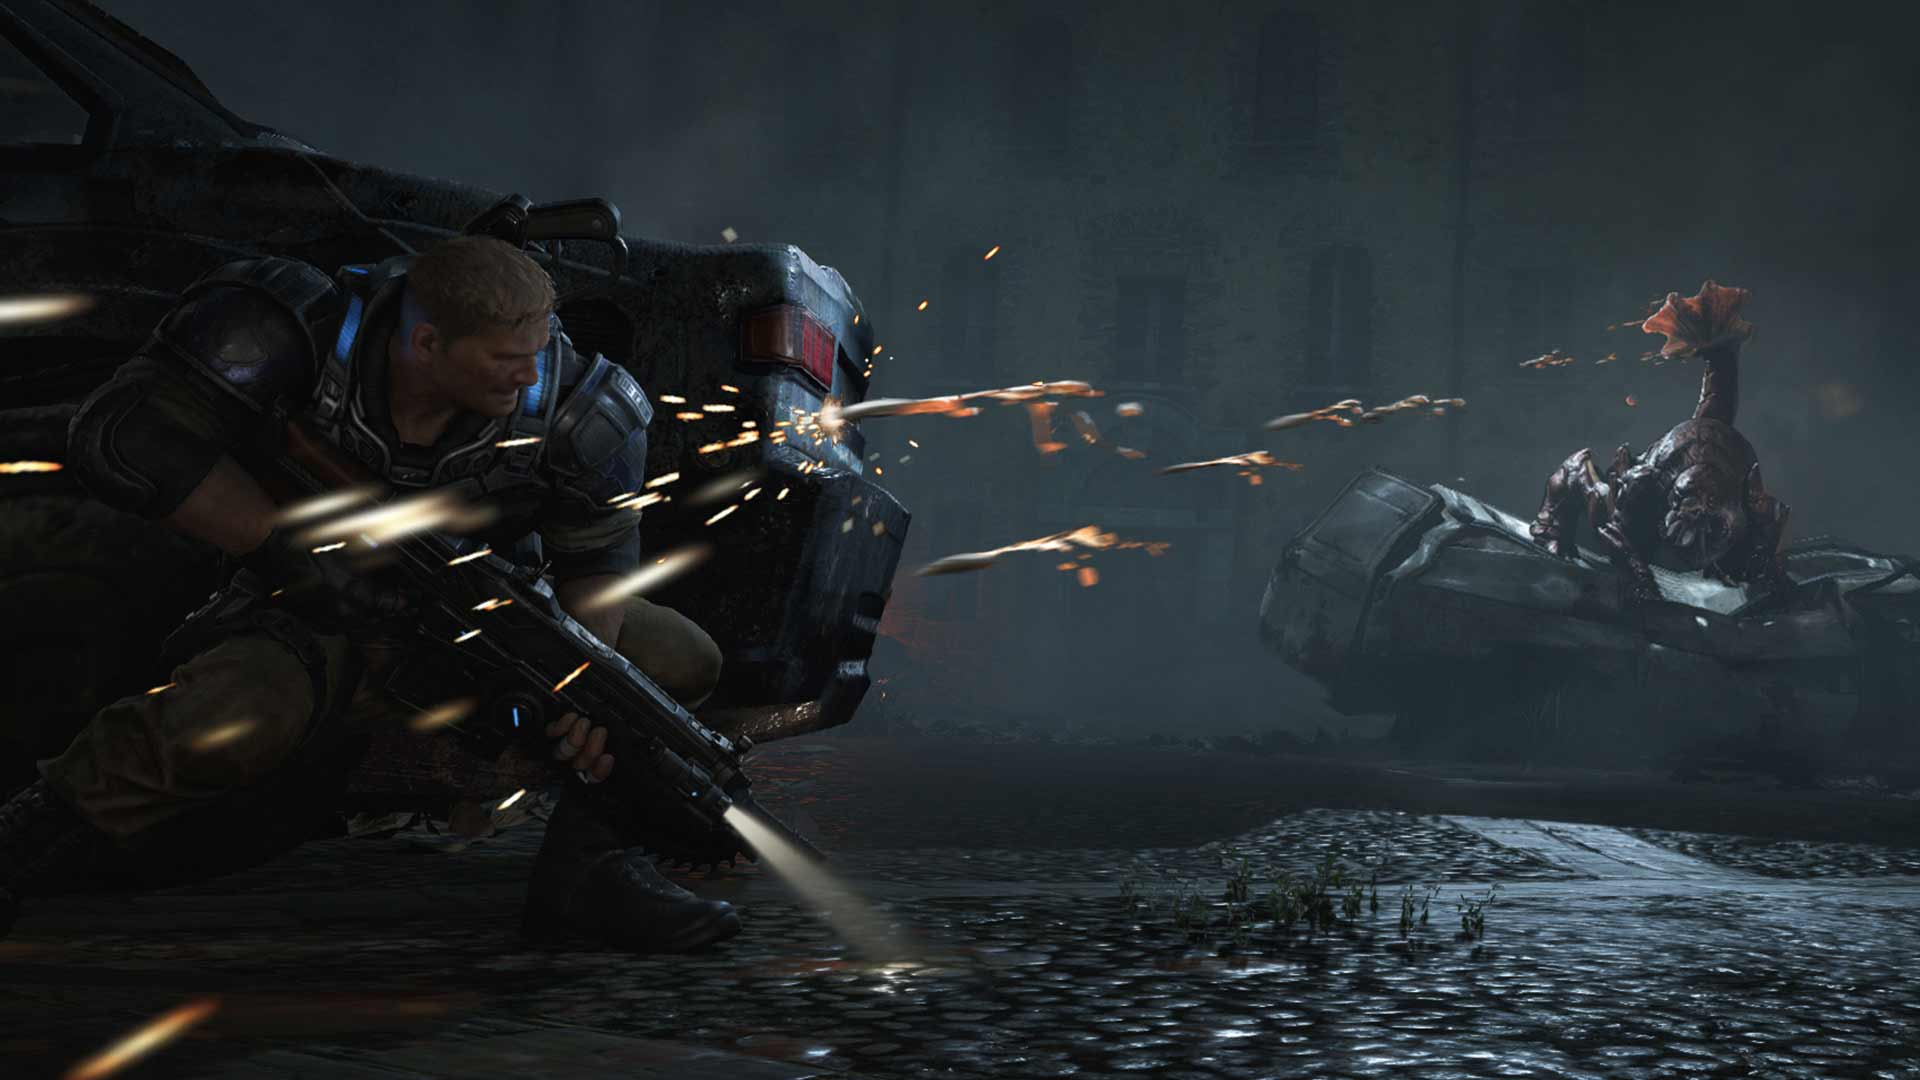 Gears Of War 4 Has A Stack Of Exclusives On PC 0da52fb22304728e14eb7f8a0dd50725